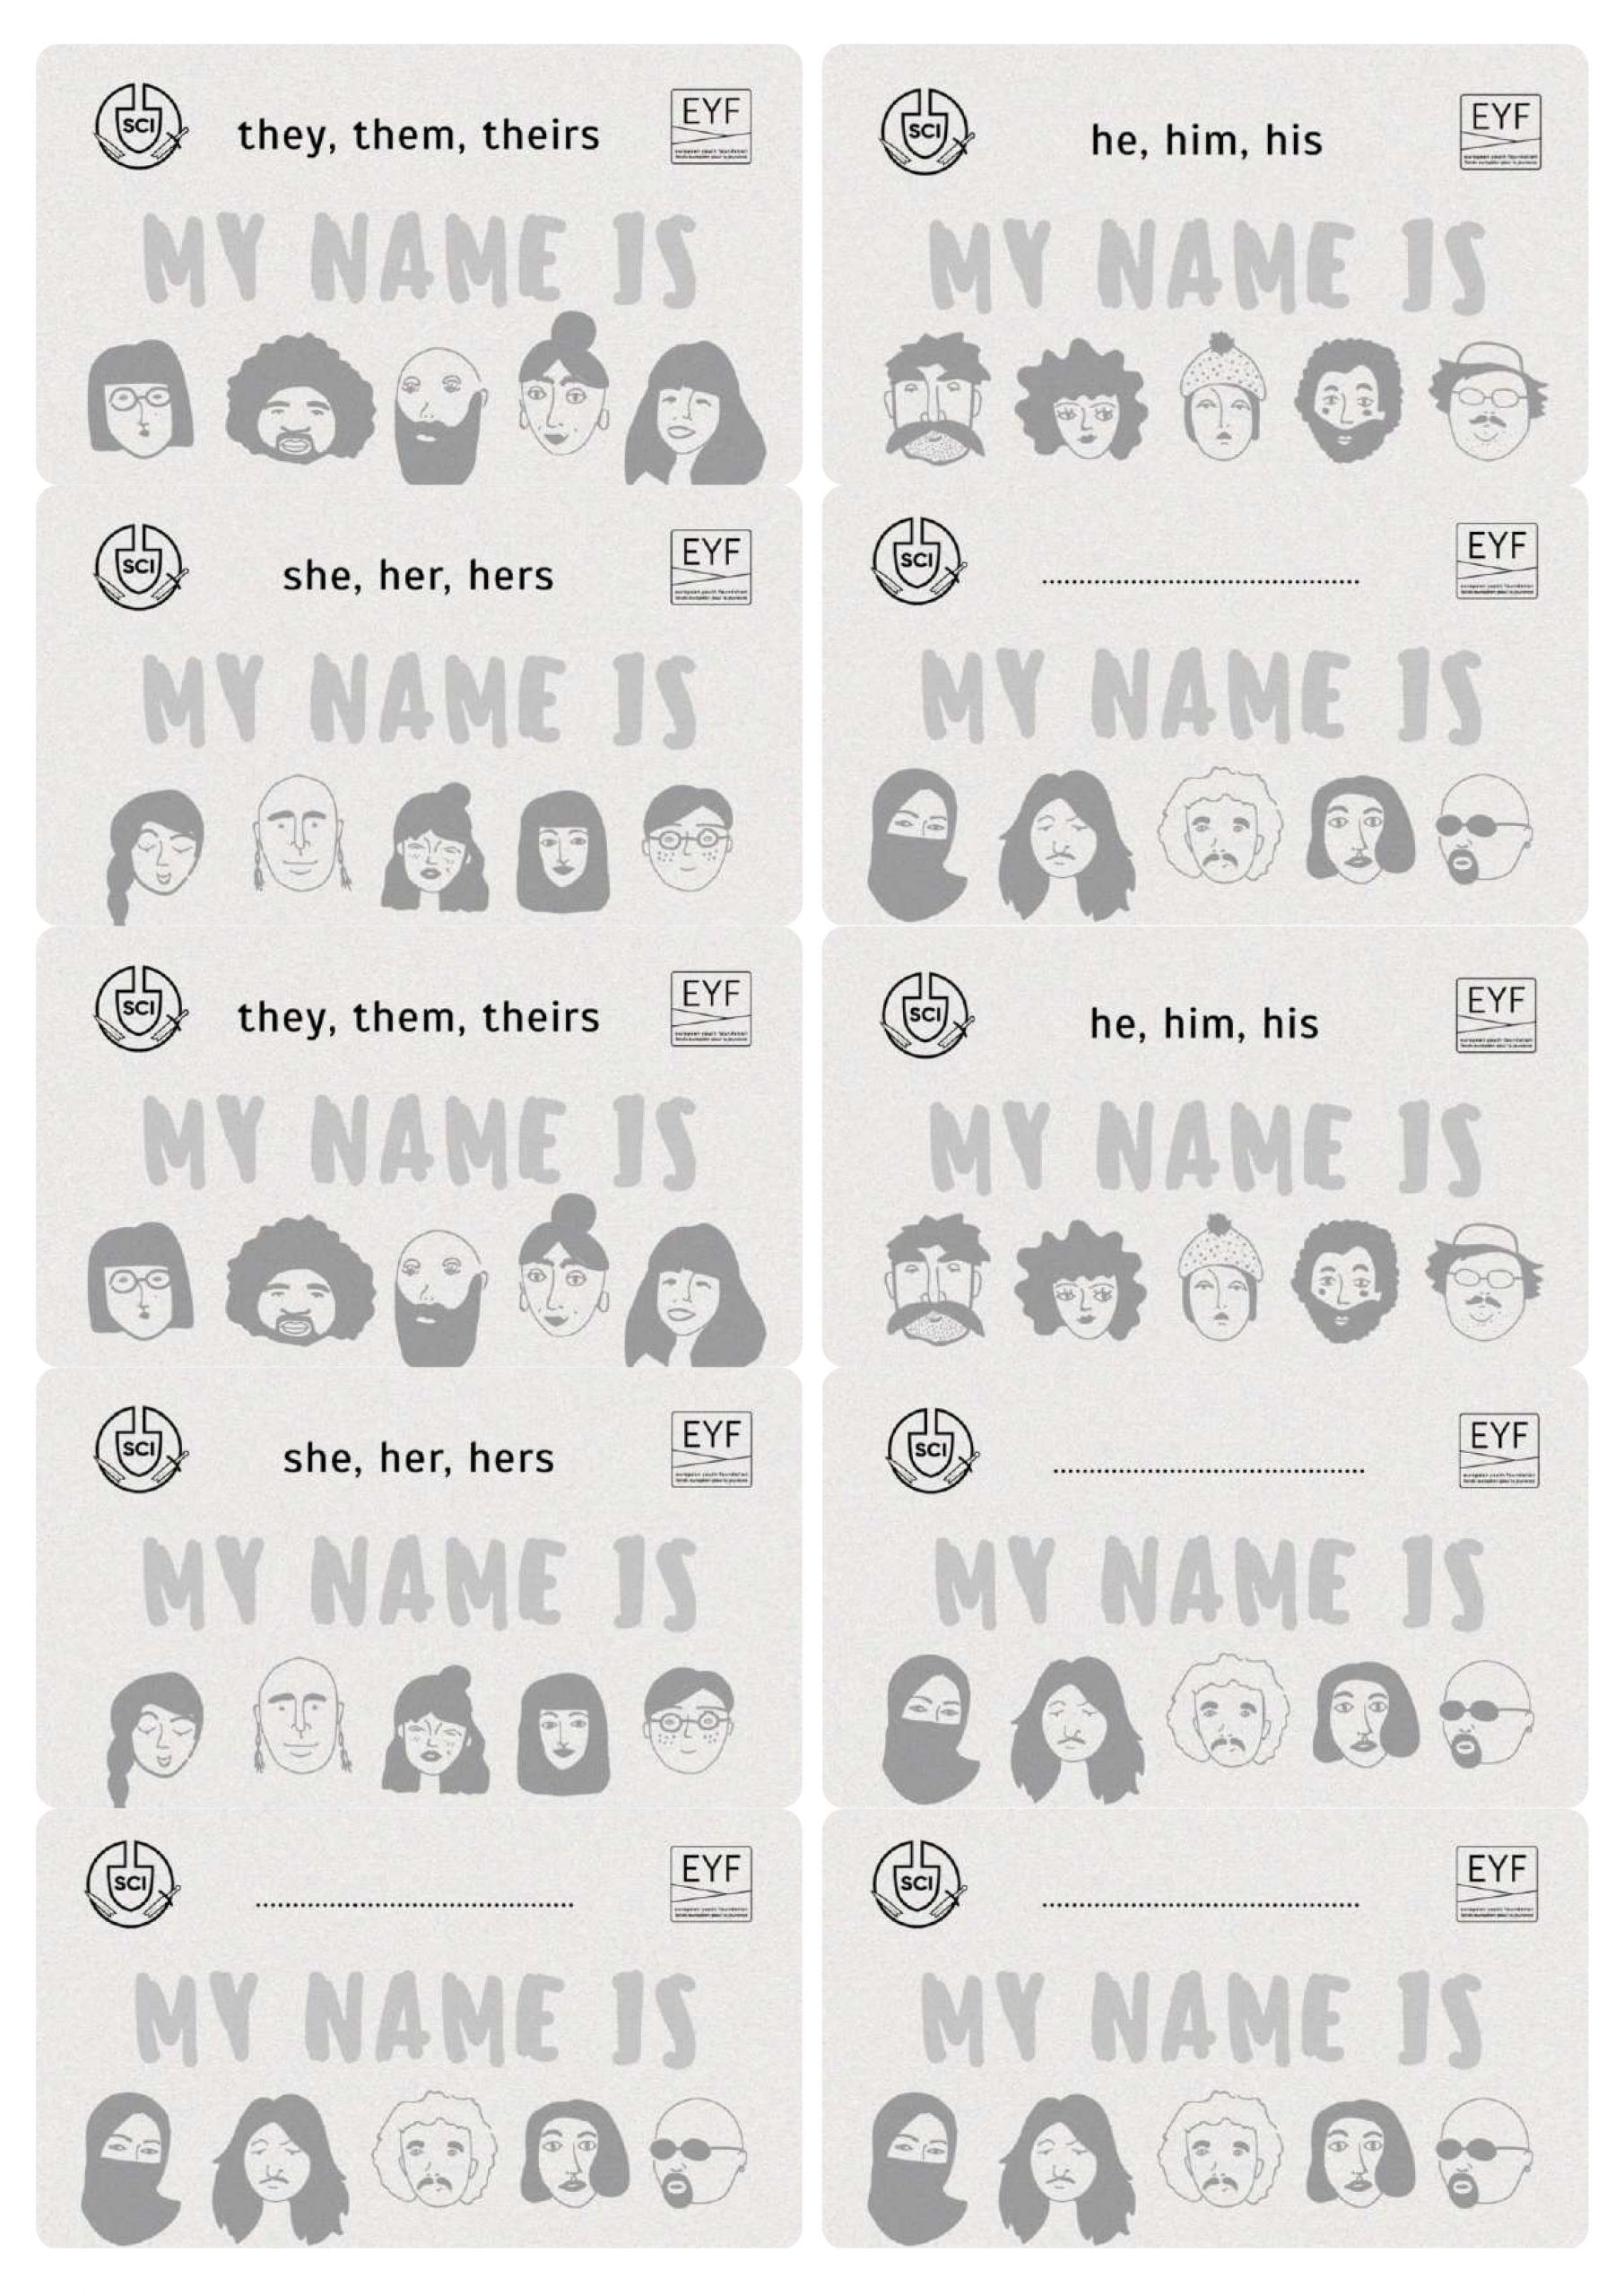 Gender-sensitive name tags